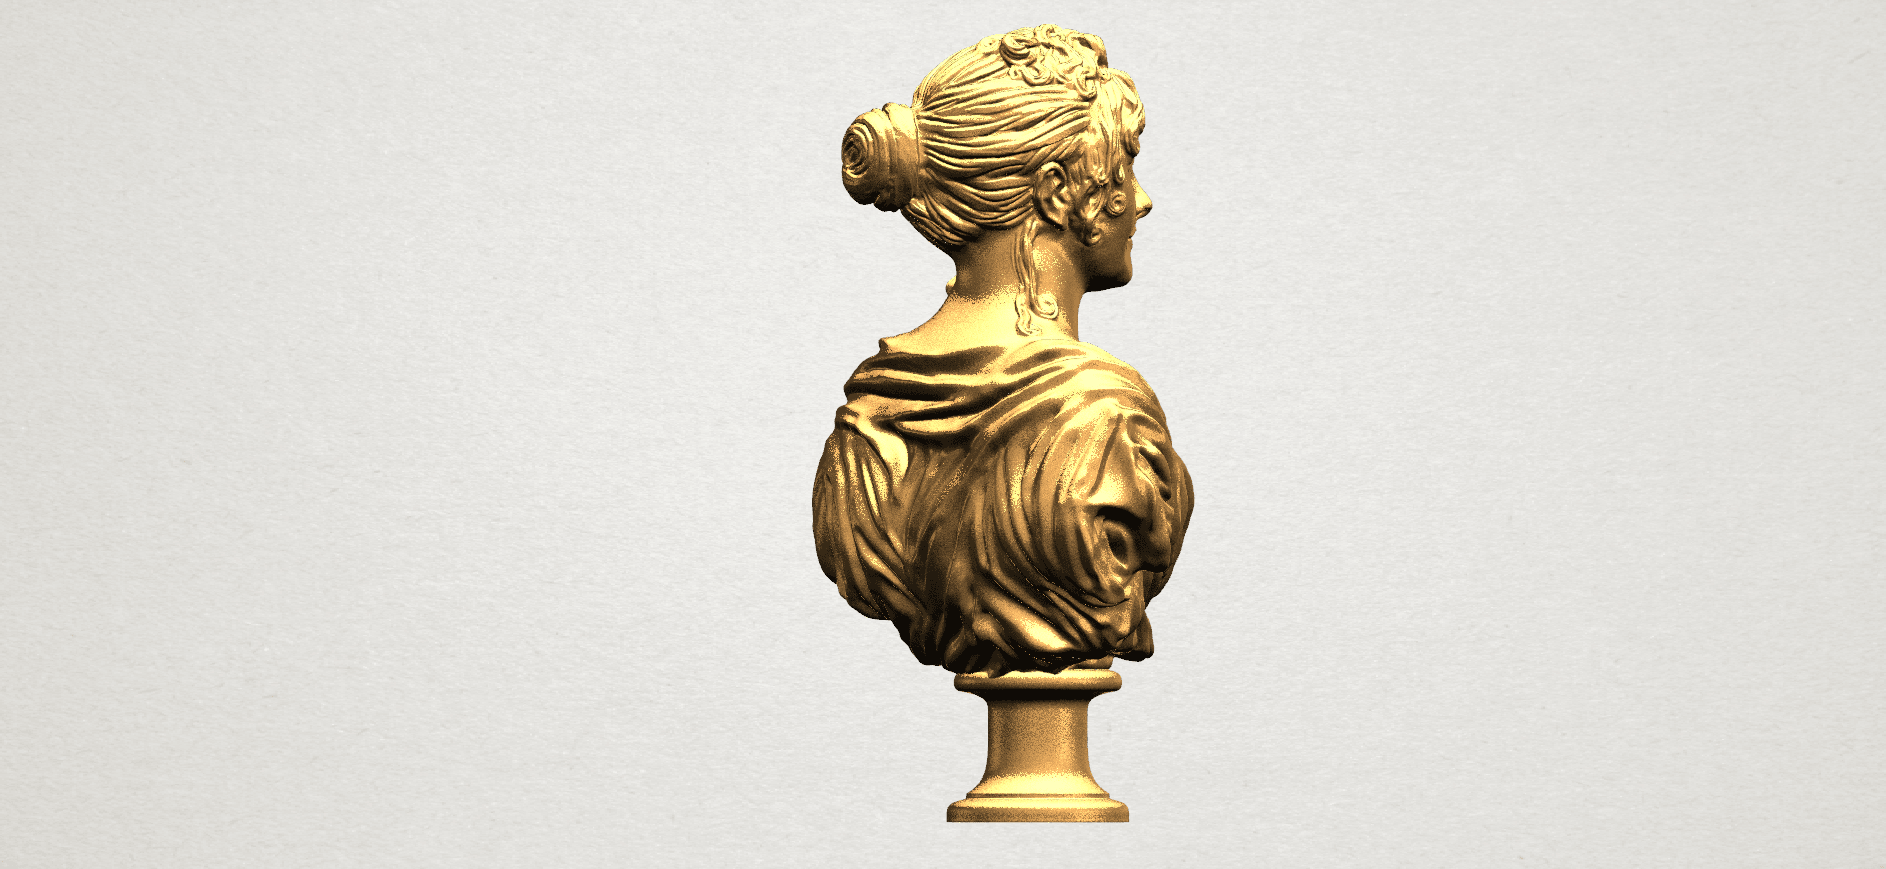 Bust of a girl 01 A05.png Download free STL file Bust of a girl 01 • Object to 3D print, GeorgesNikkei